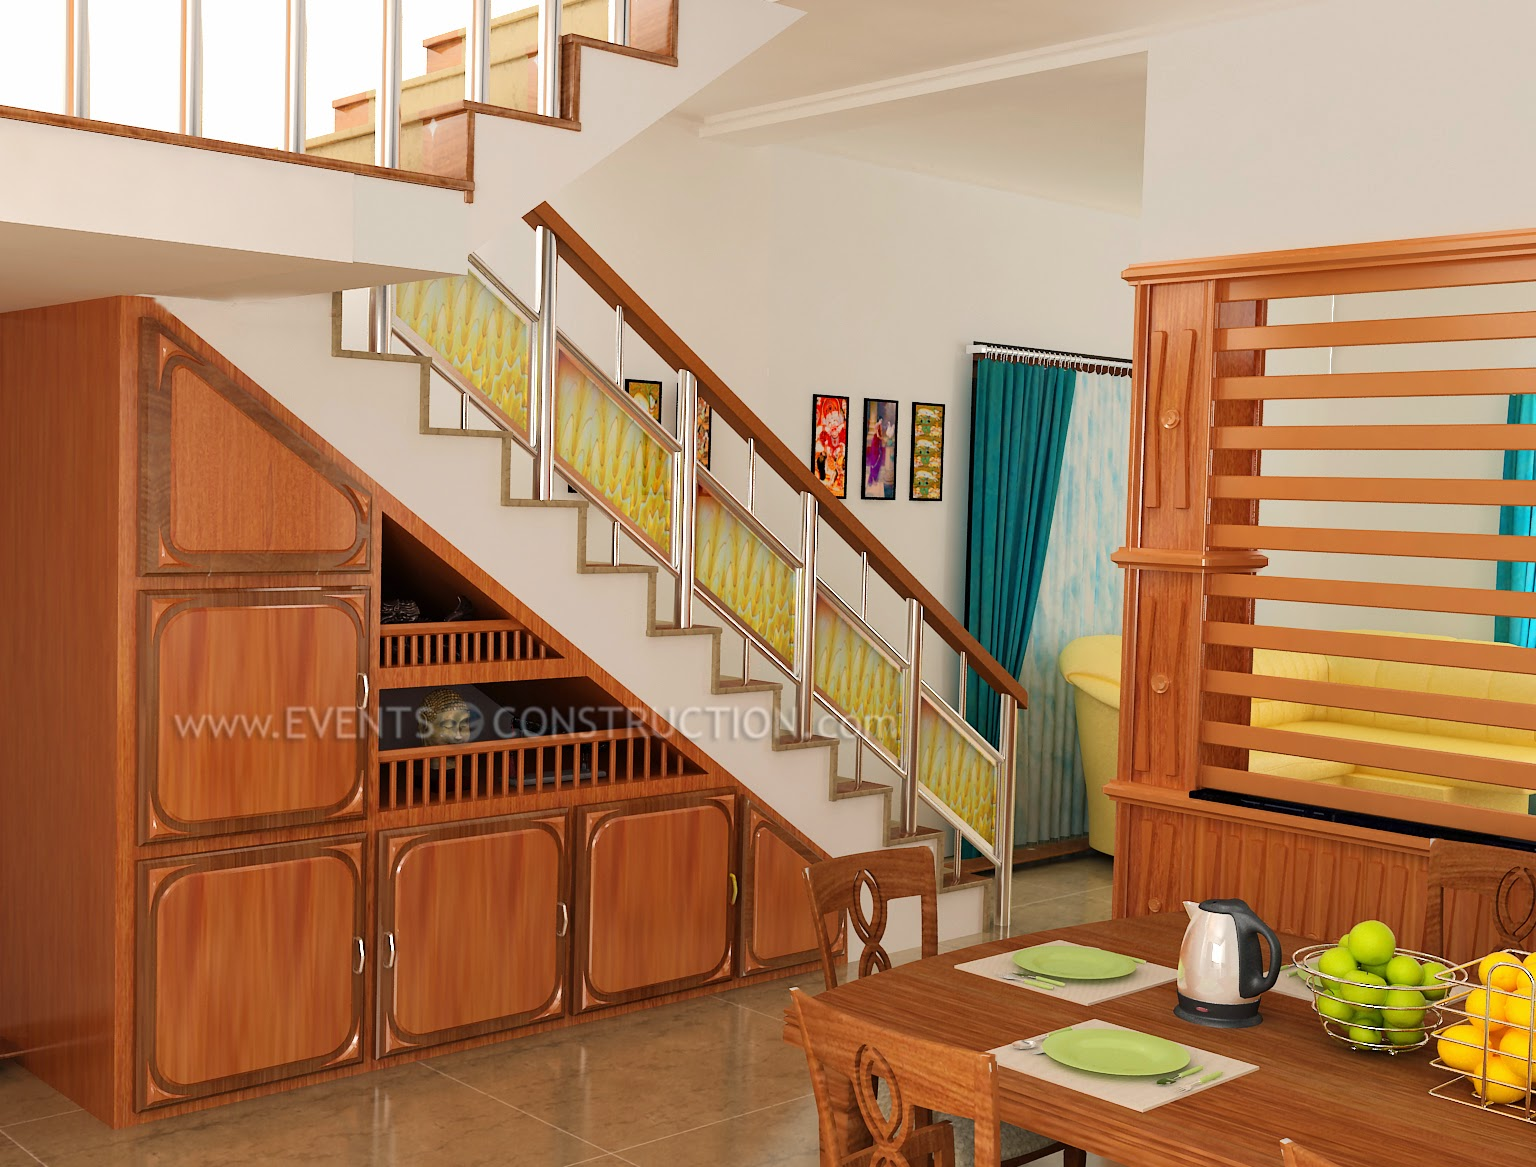 staircase design for kerala homes garden decoration ideas homemade. Black Bedroom Furniture Sets. Home Design Ideas